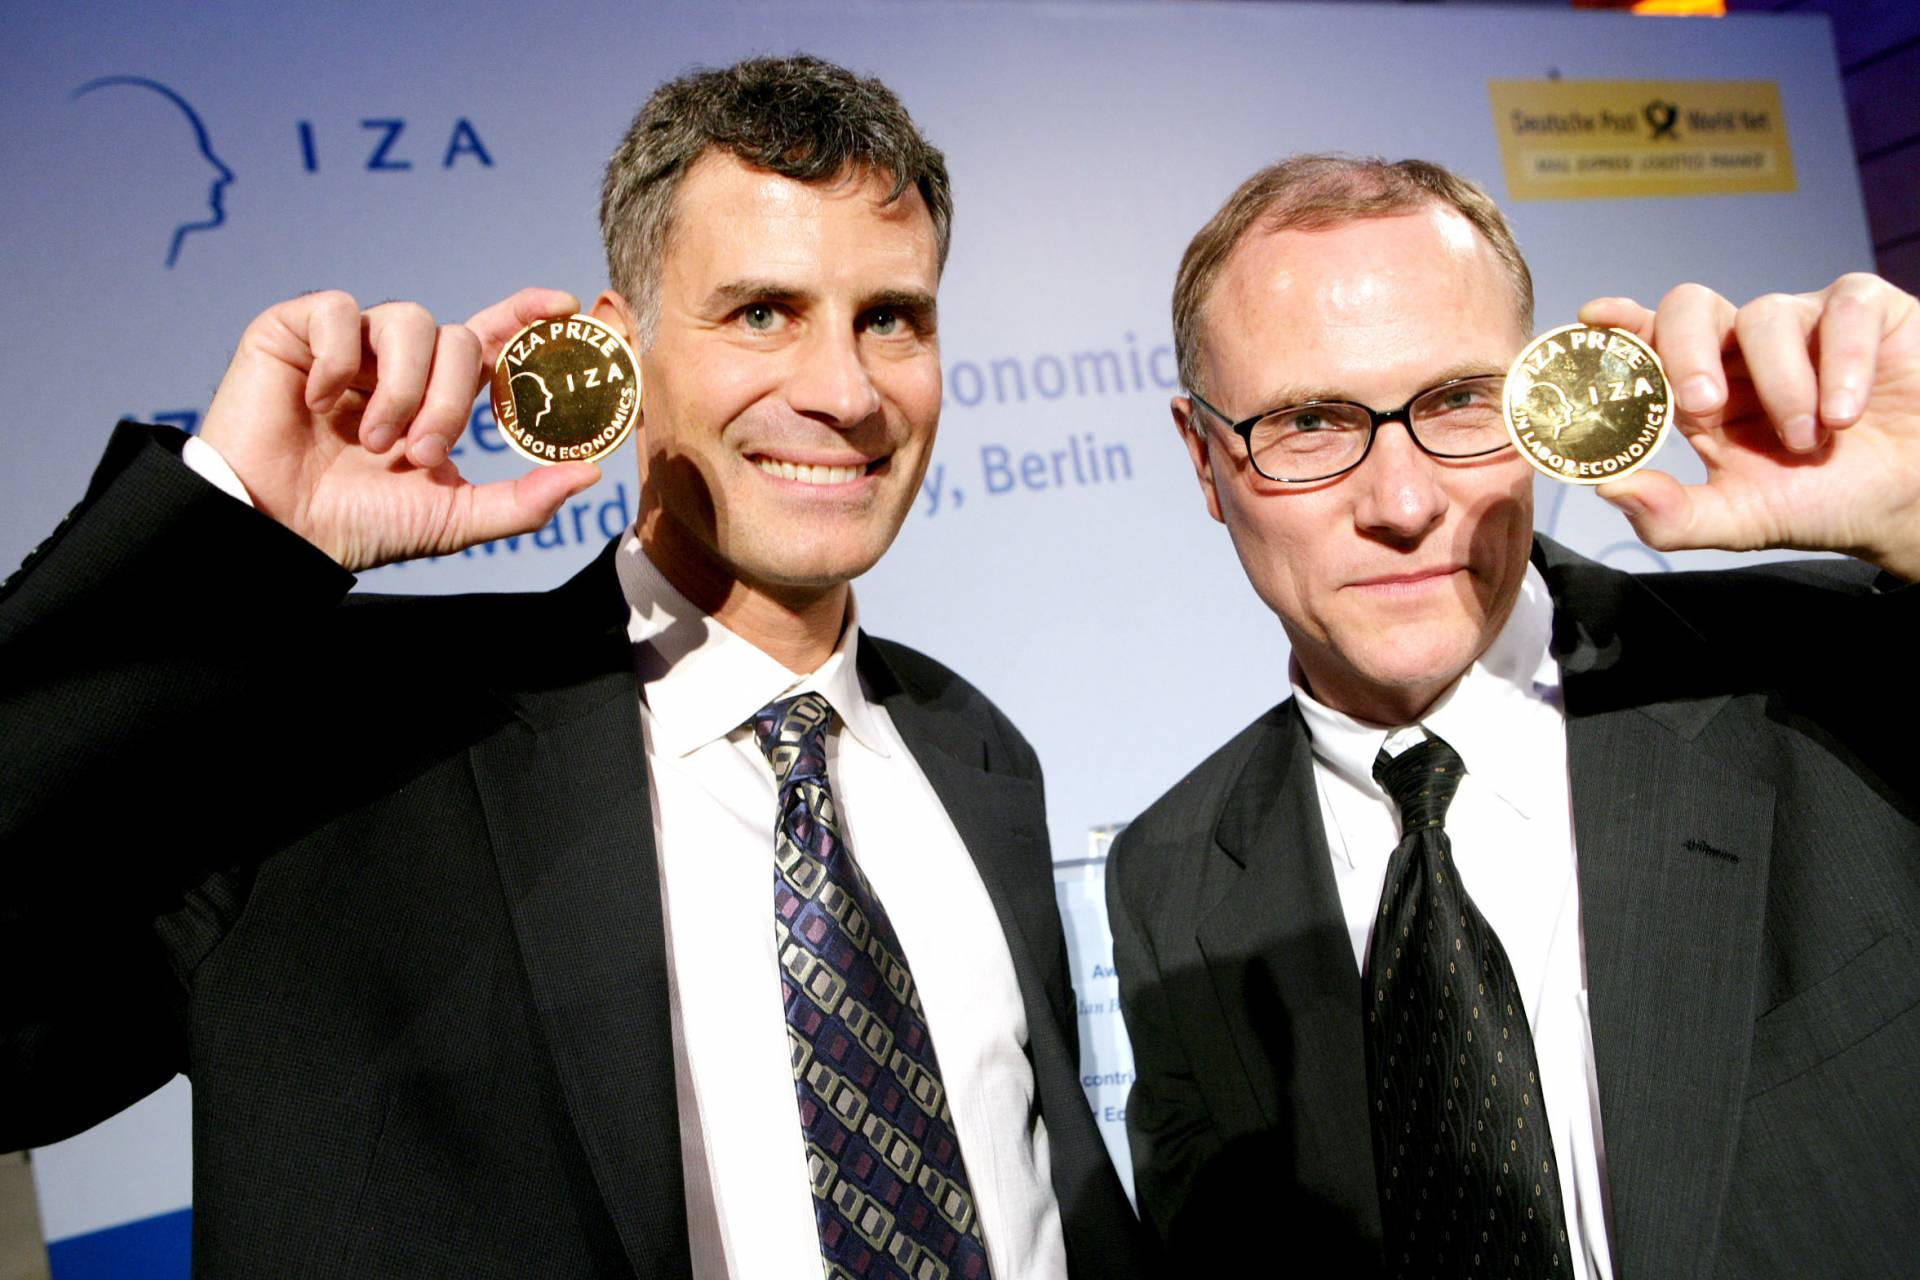 Alan Krueger and David Card hold up their IZA medals